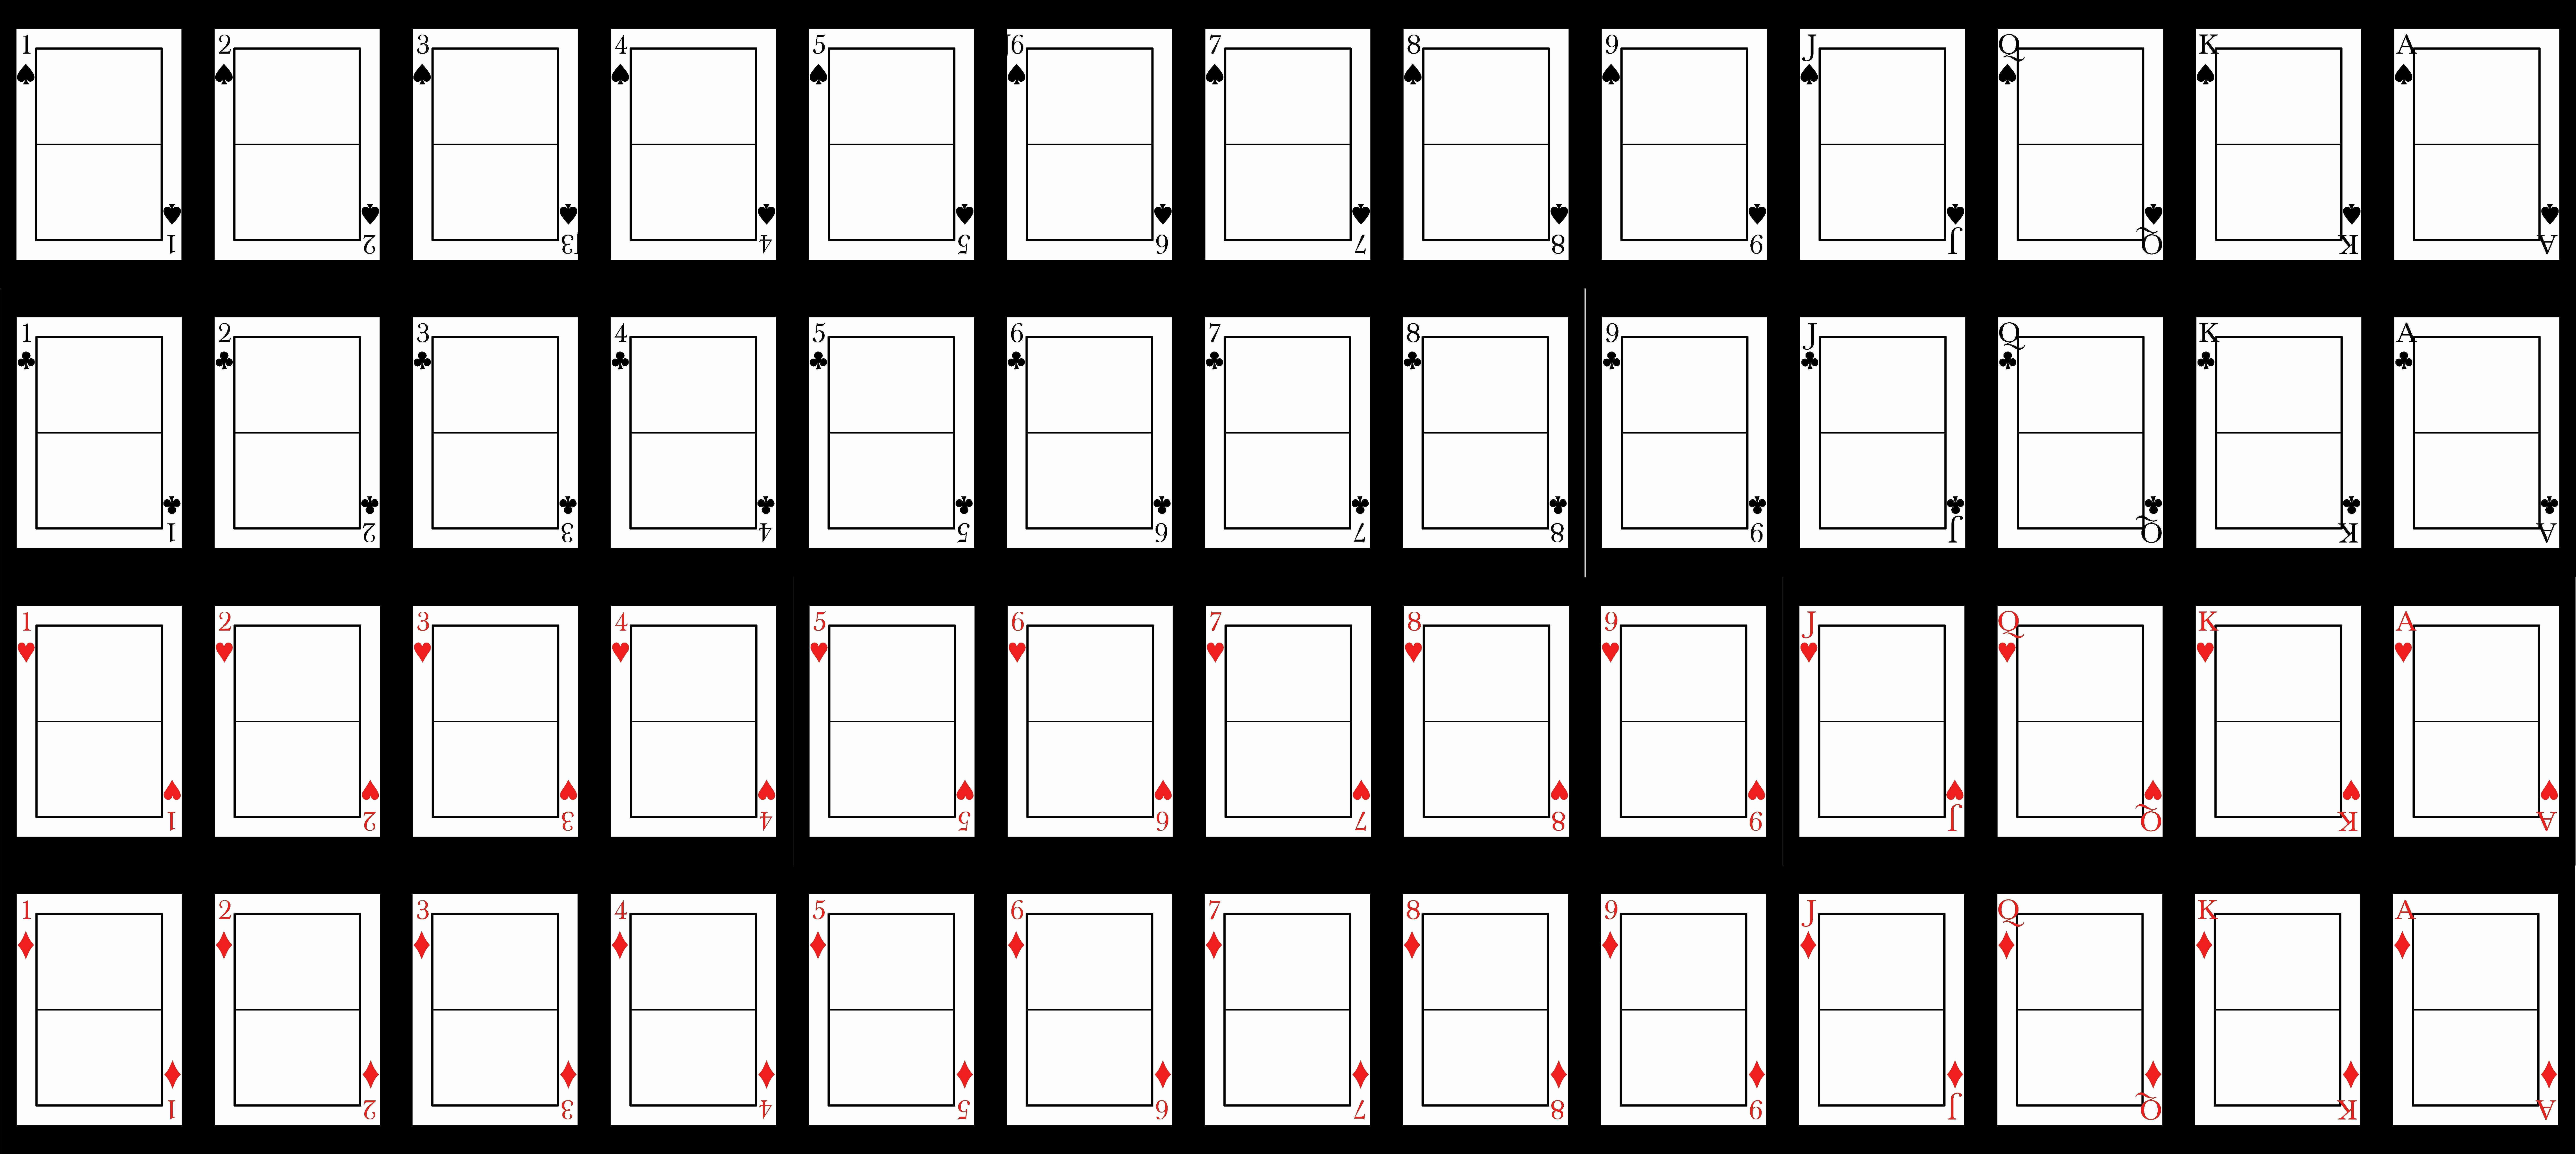 Blank Playing Card Template Word Fresh Free Printable Blank Flash Cards Template Image